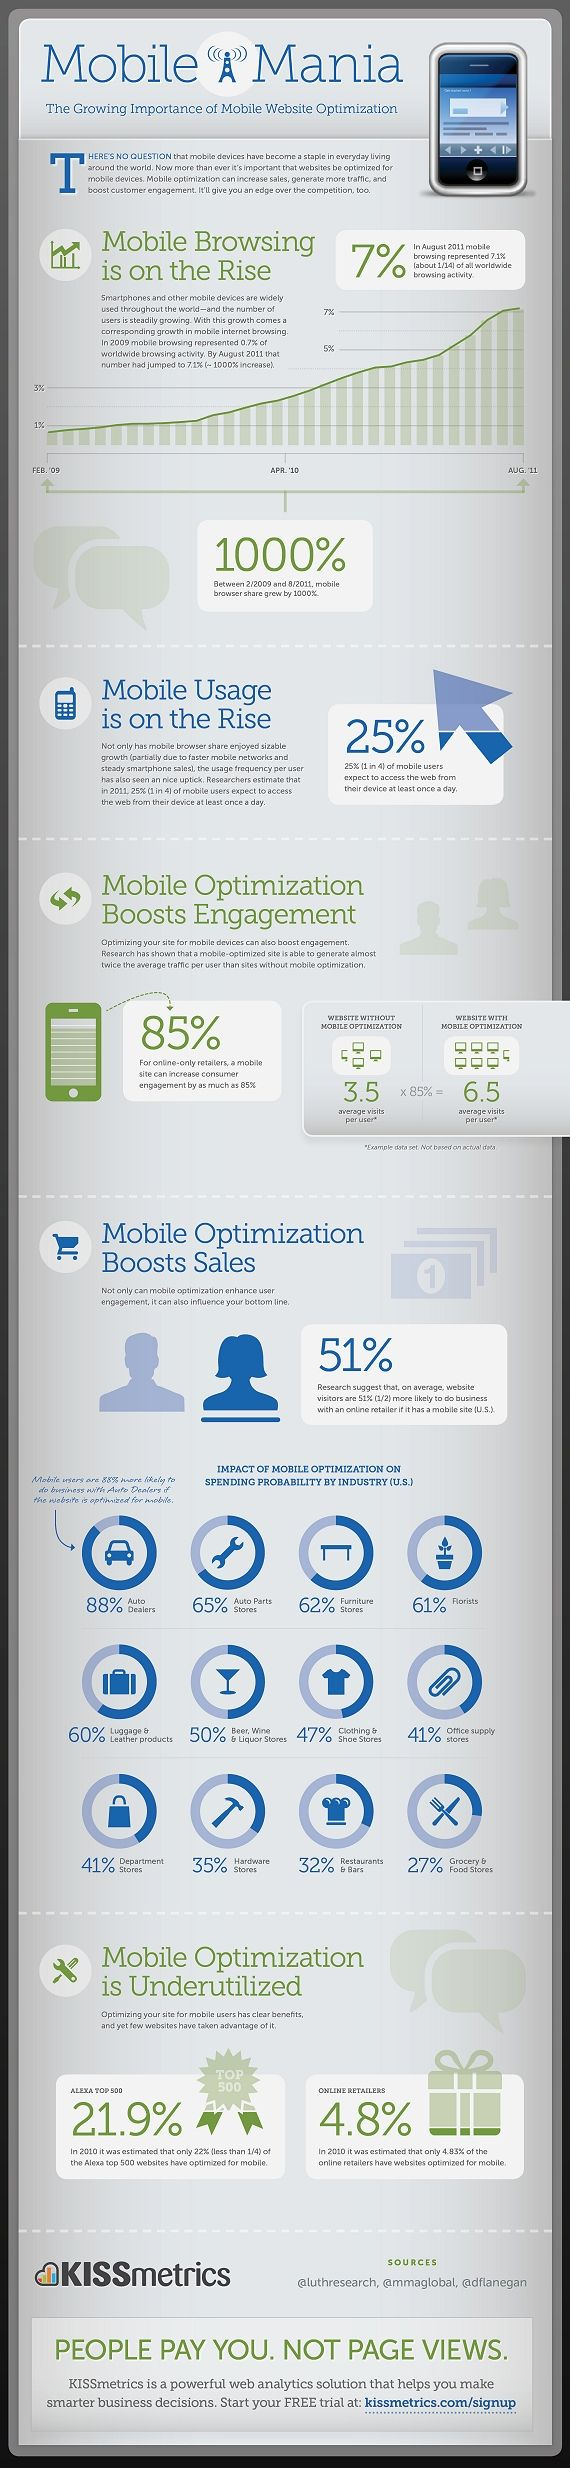 Mobile Mania - The Growing Importance of Mobile Website Optimization [Infographic]